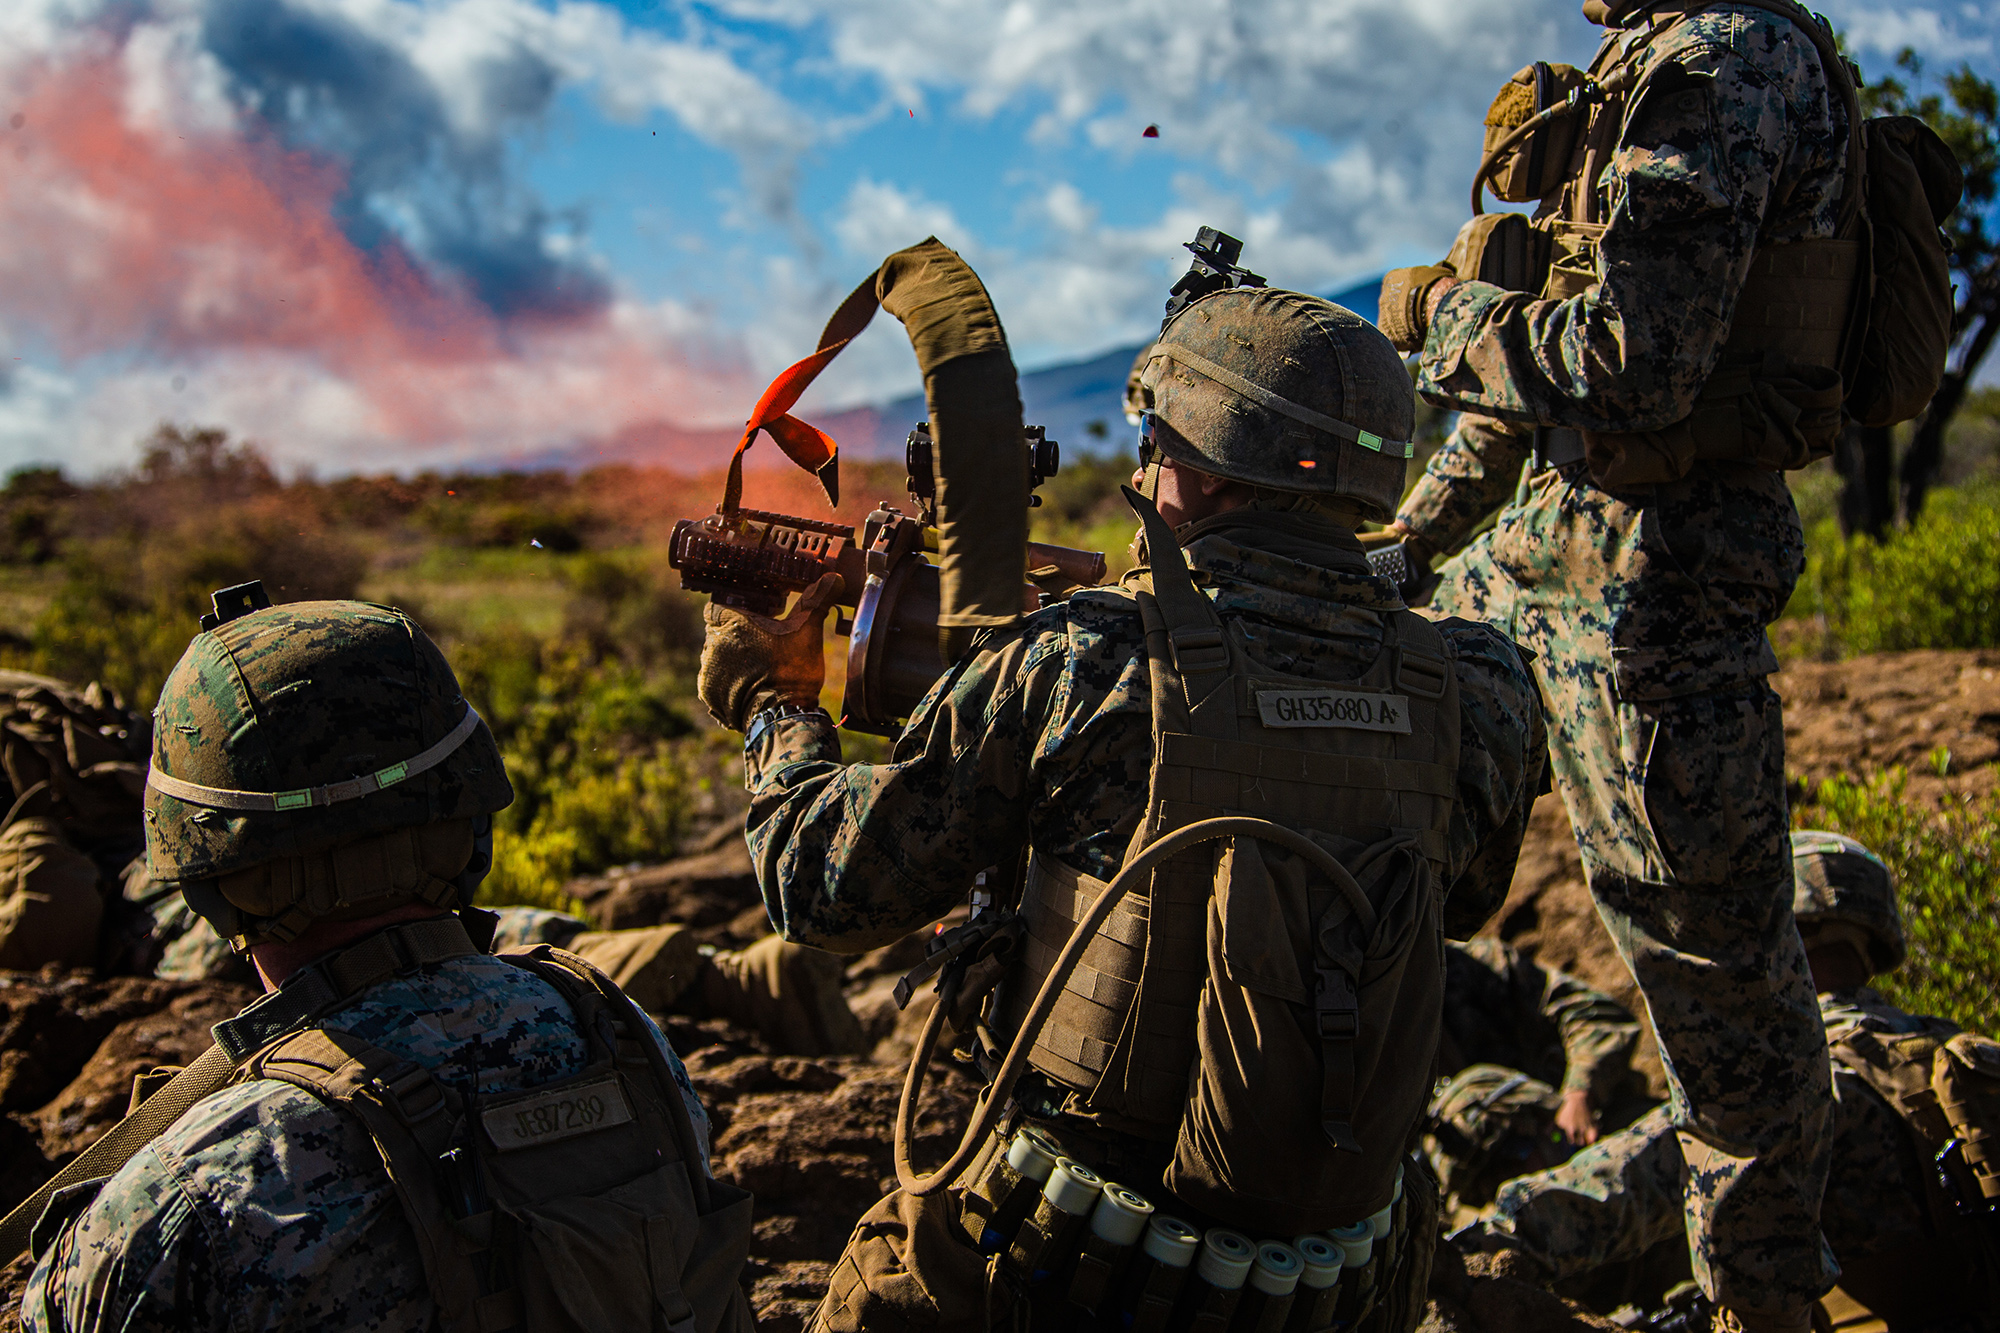 A Marine fires a 203 grenade launcher during exercise Bougainville II at Pohakuloa Training Area, Hawaii, July 19, 2020. (Cpl. Jacob Wilson/Marine Corps)